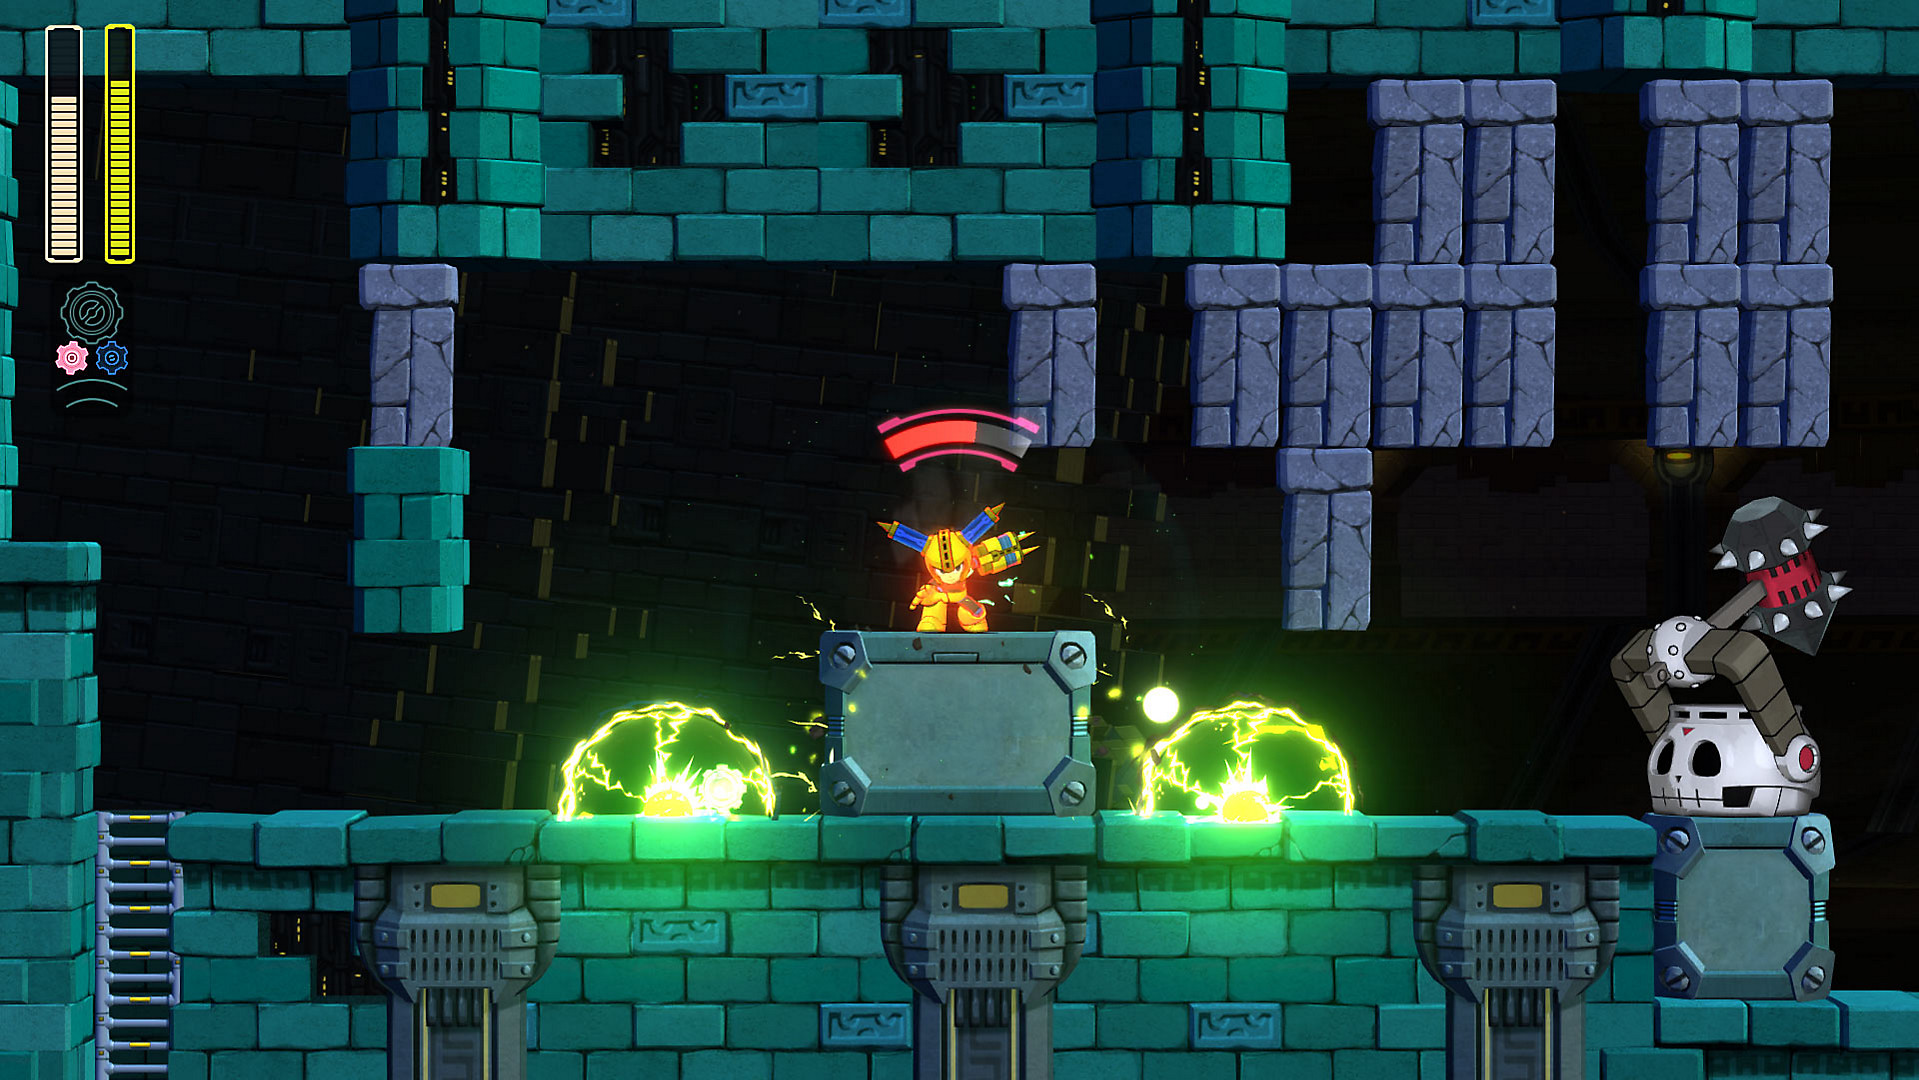 mega-man-11-screenshot-05-ps4-us-02oct20